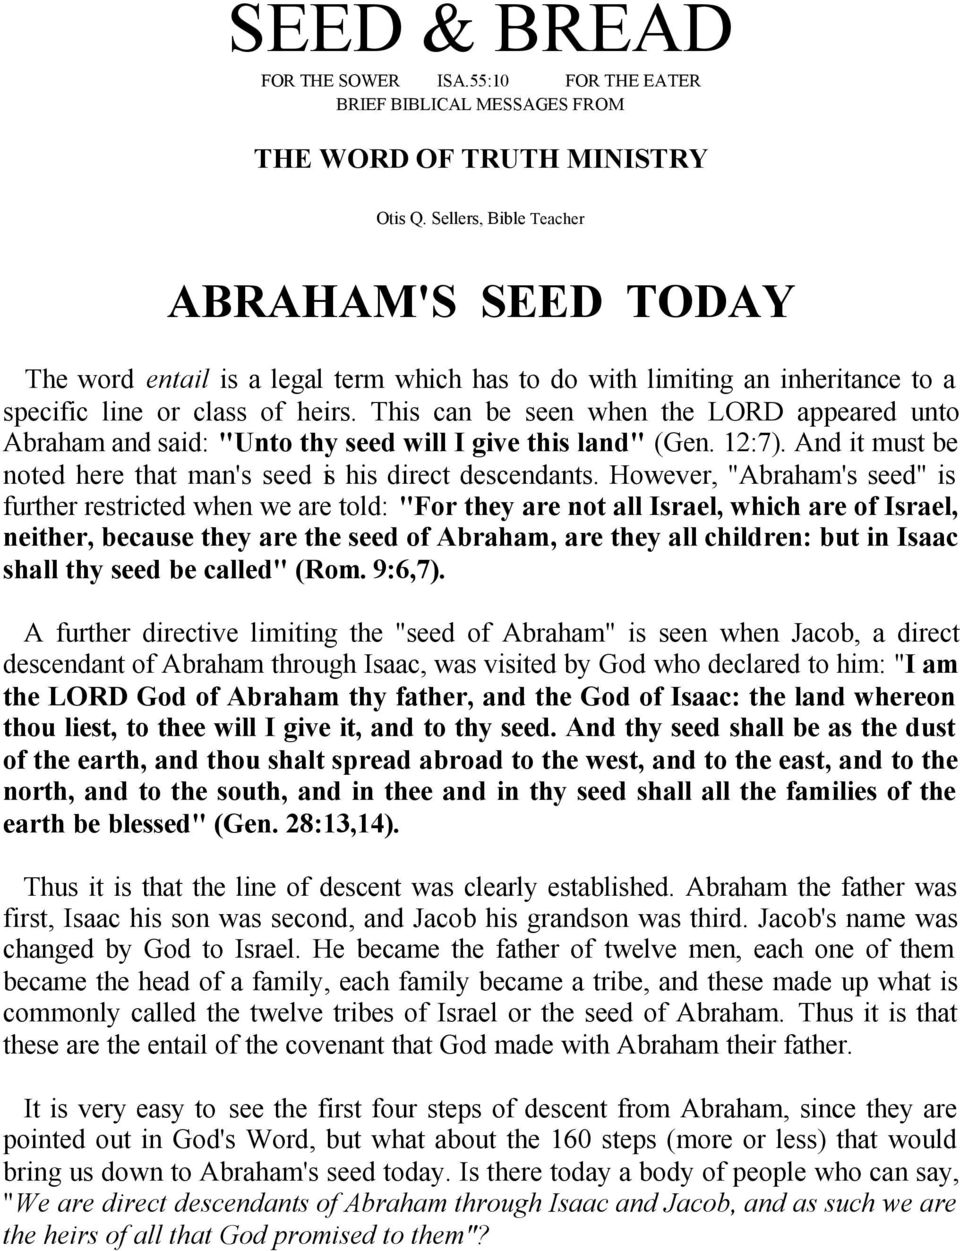 "This can be seen when the LORD appeared unto Abraham and said: ""Unto thy seed will I give this land"" (Gen. 12:7). And it must be noted here that man's seed is his direct descendants."